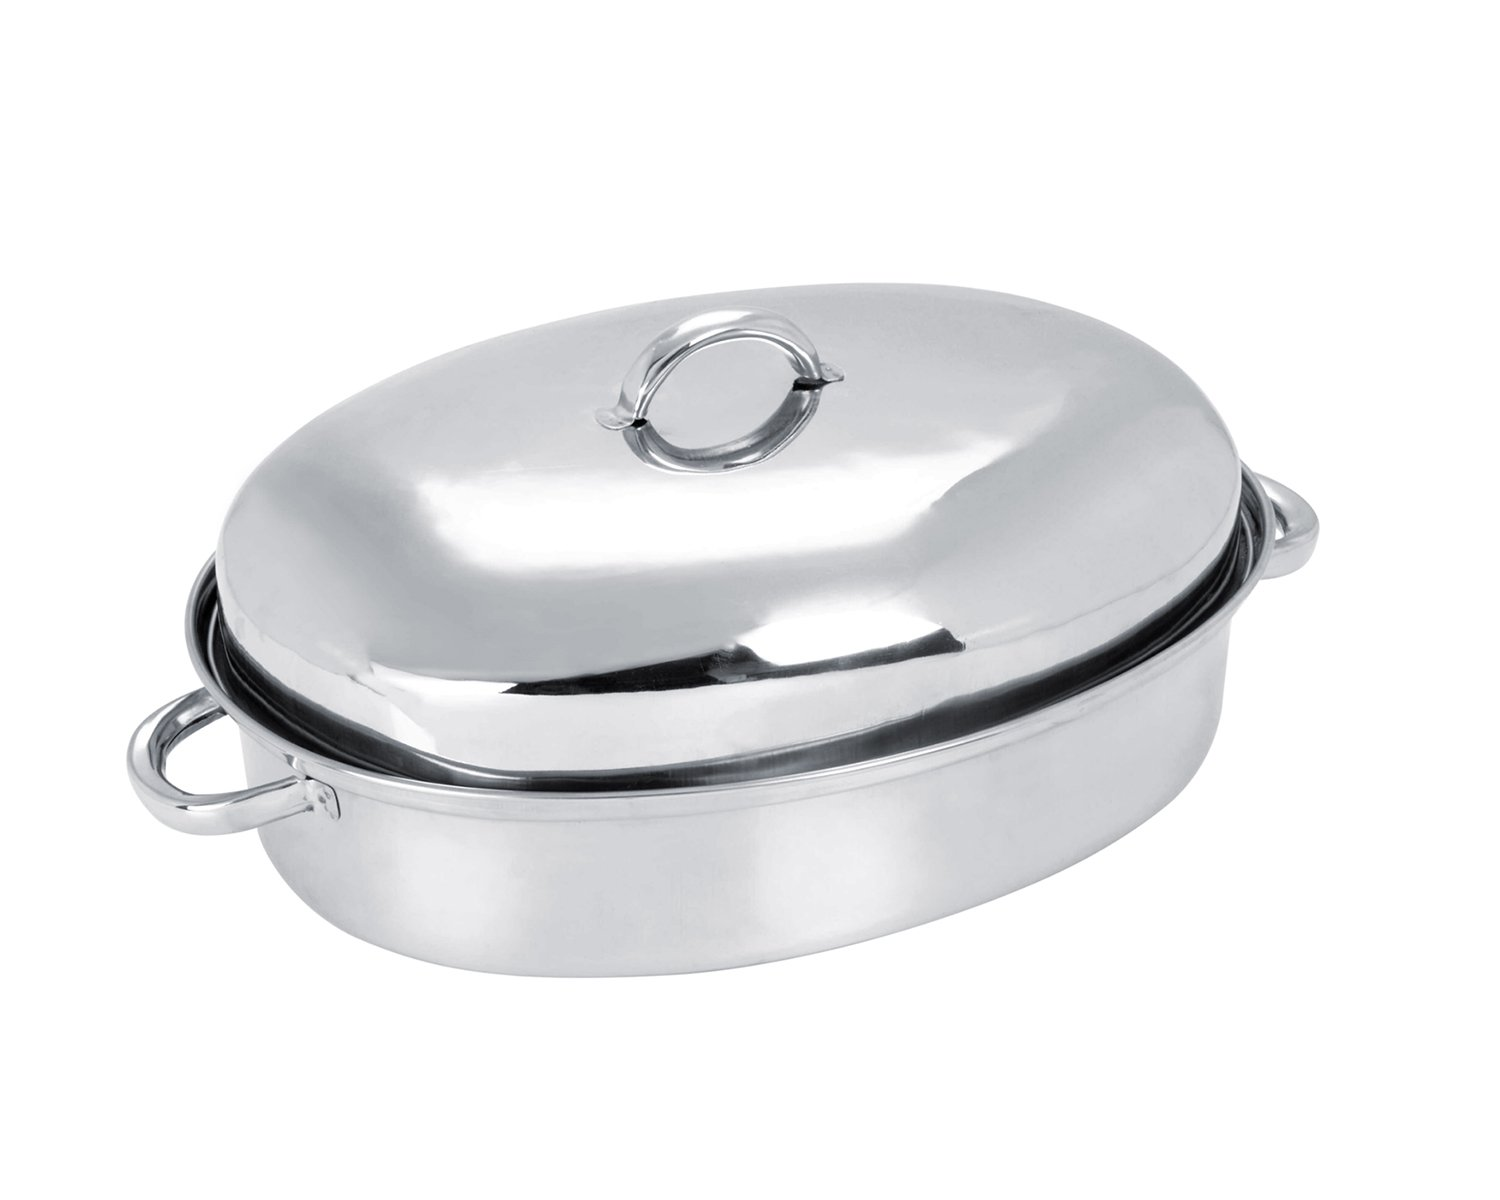 Stainless Steel Oval Roaster with Rack and Self Basting Lid 37 cm SQ Professional